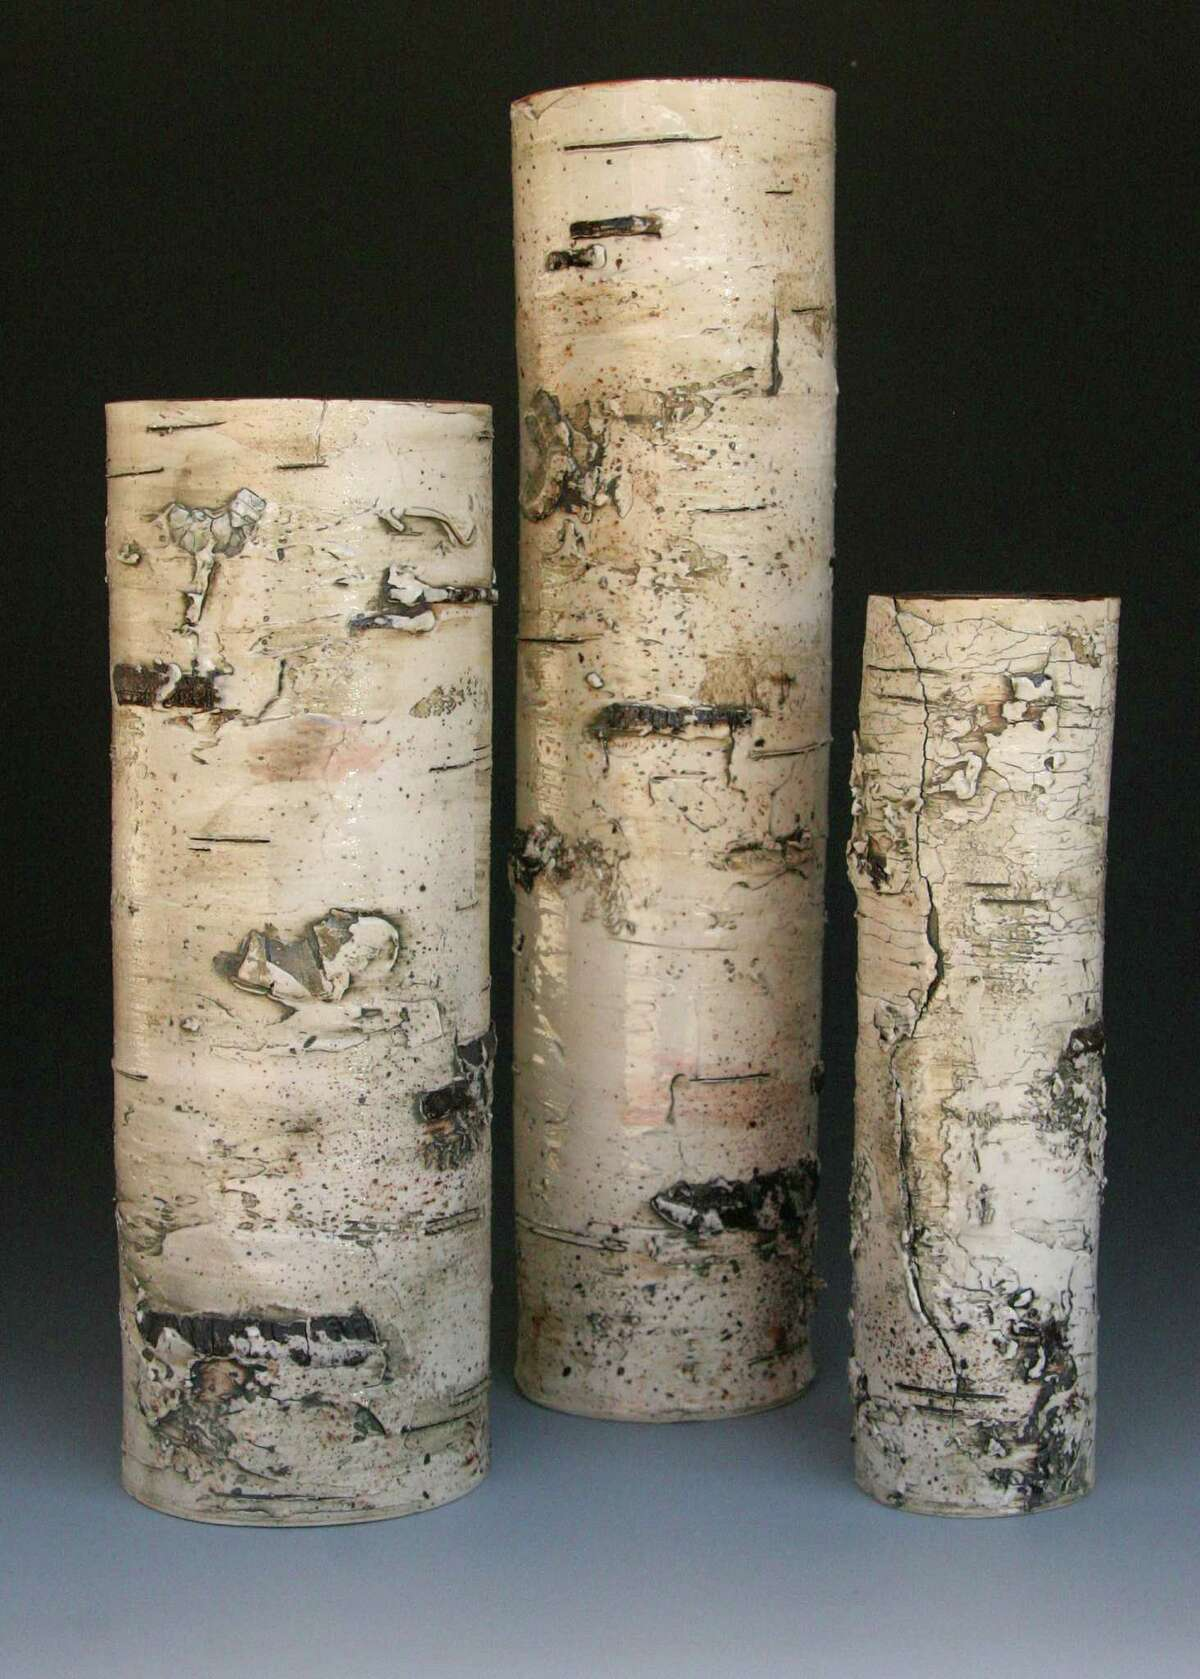 Michigan artist Elizabeth Delyria's stoneware vases look so much like actual birch logs that viewers might have to see the smooth, hollow interior to believe they're not actually wood; $TK at Asher Gallery in the Houston Center for Contemporary Craft.